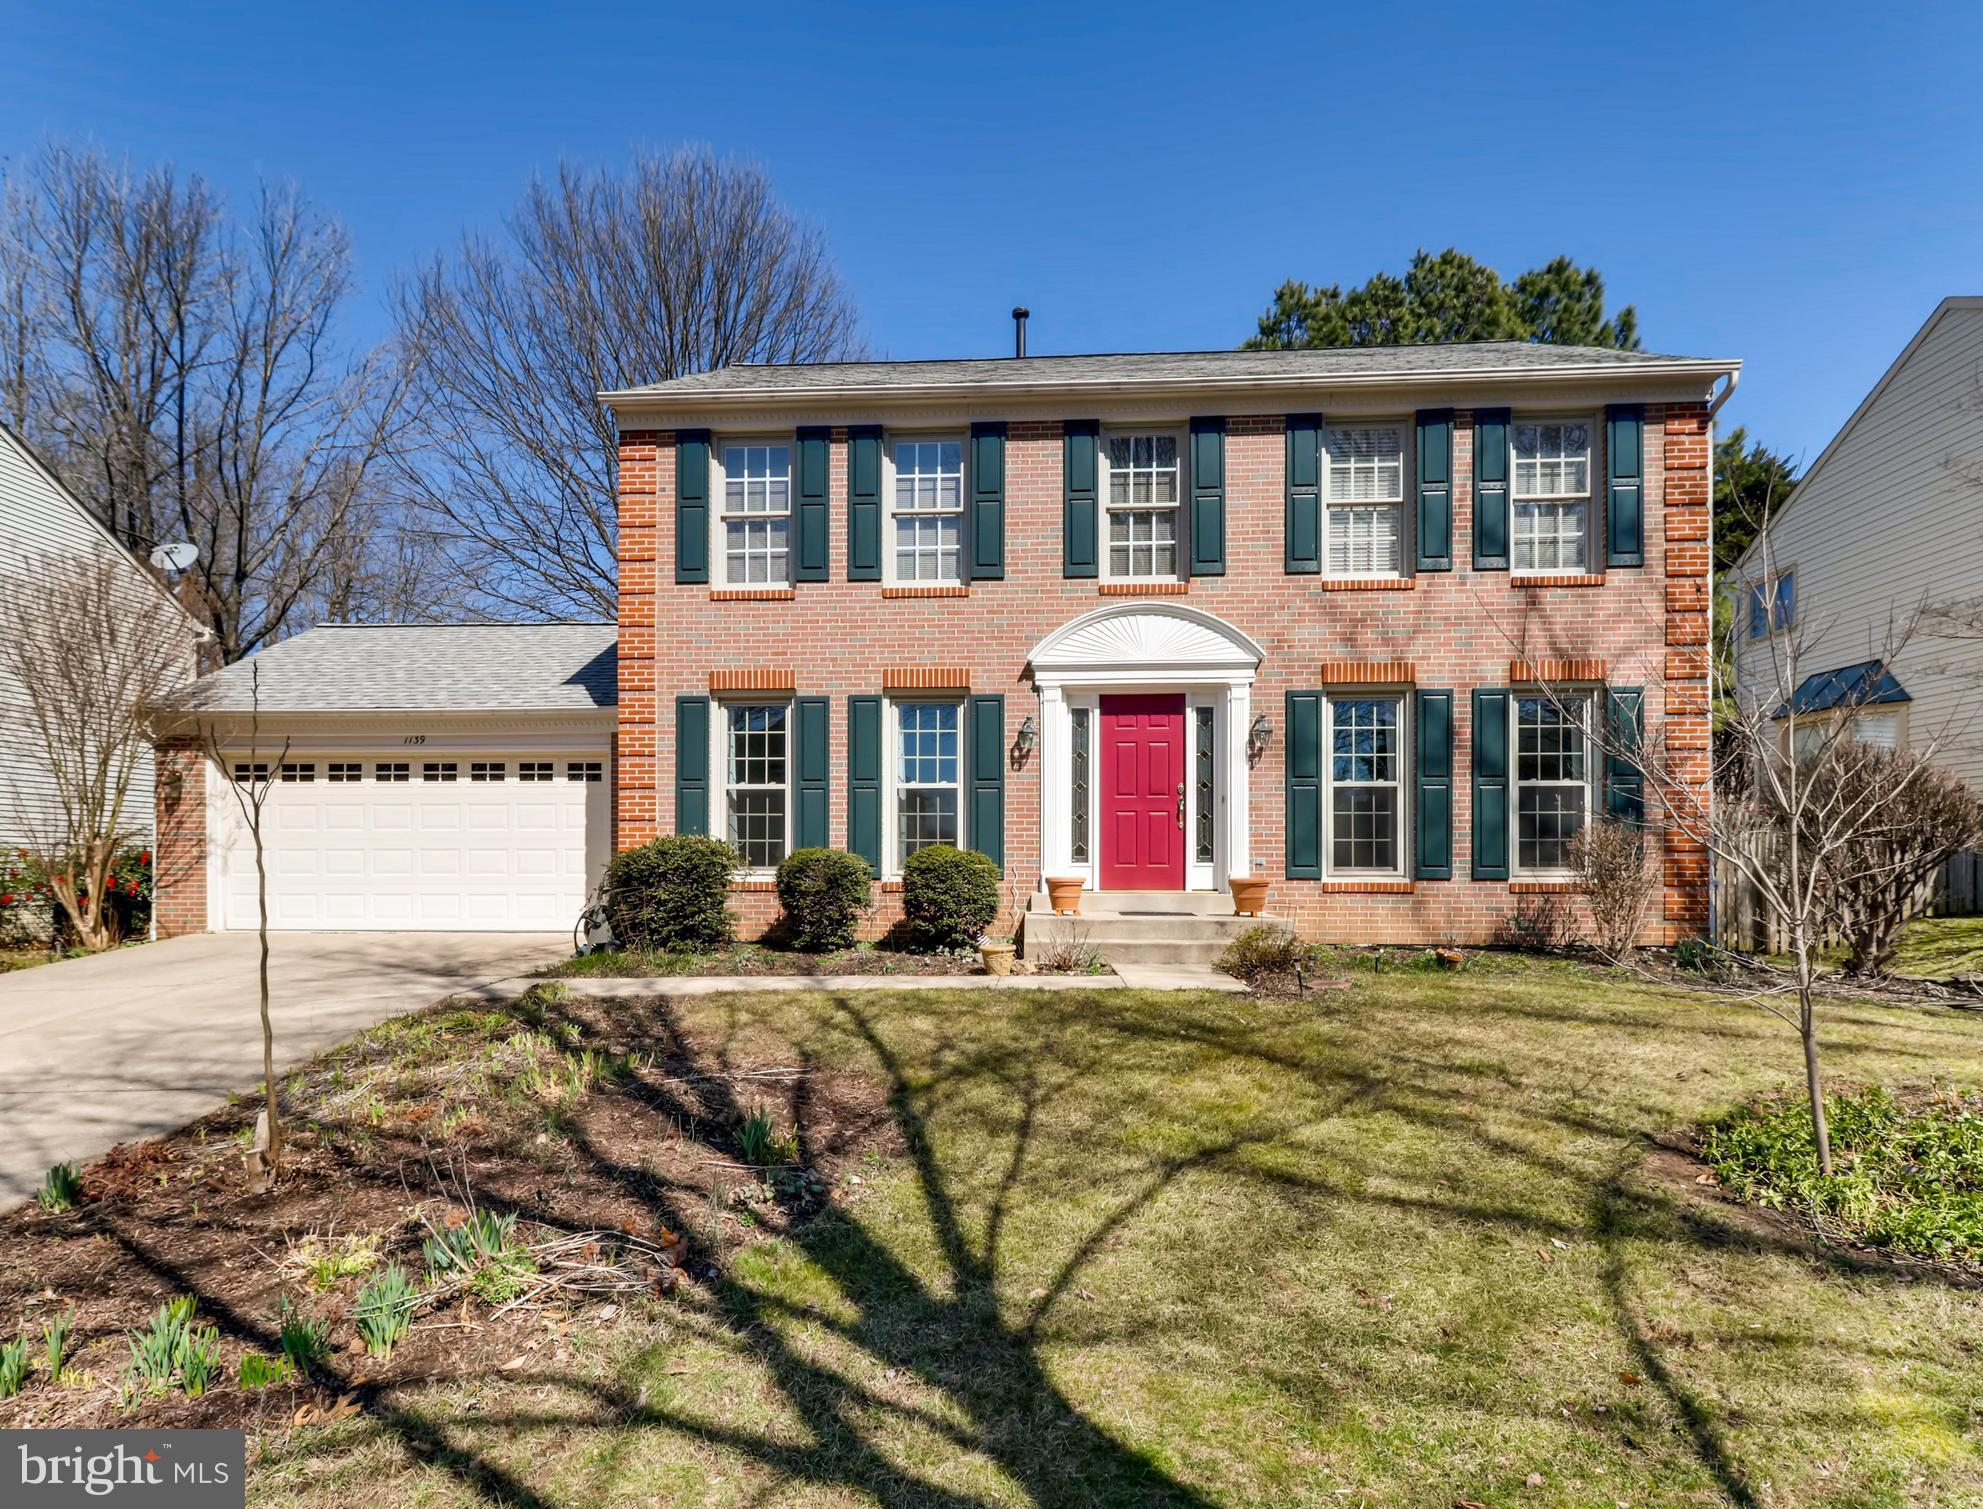 1139 CHARING CROSS DRIVE, CROFTON, MD 21114